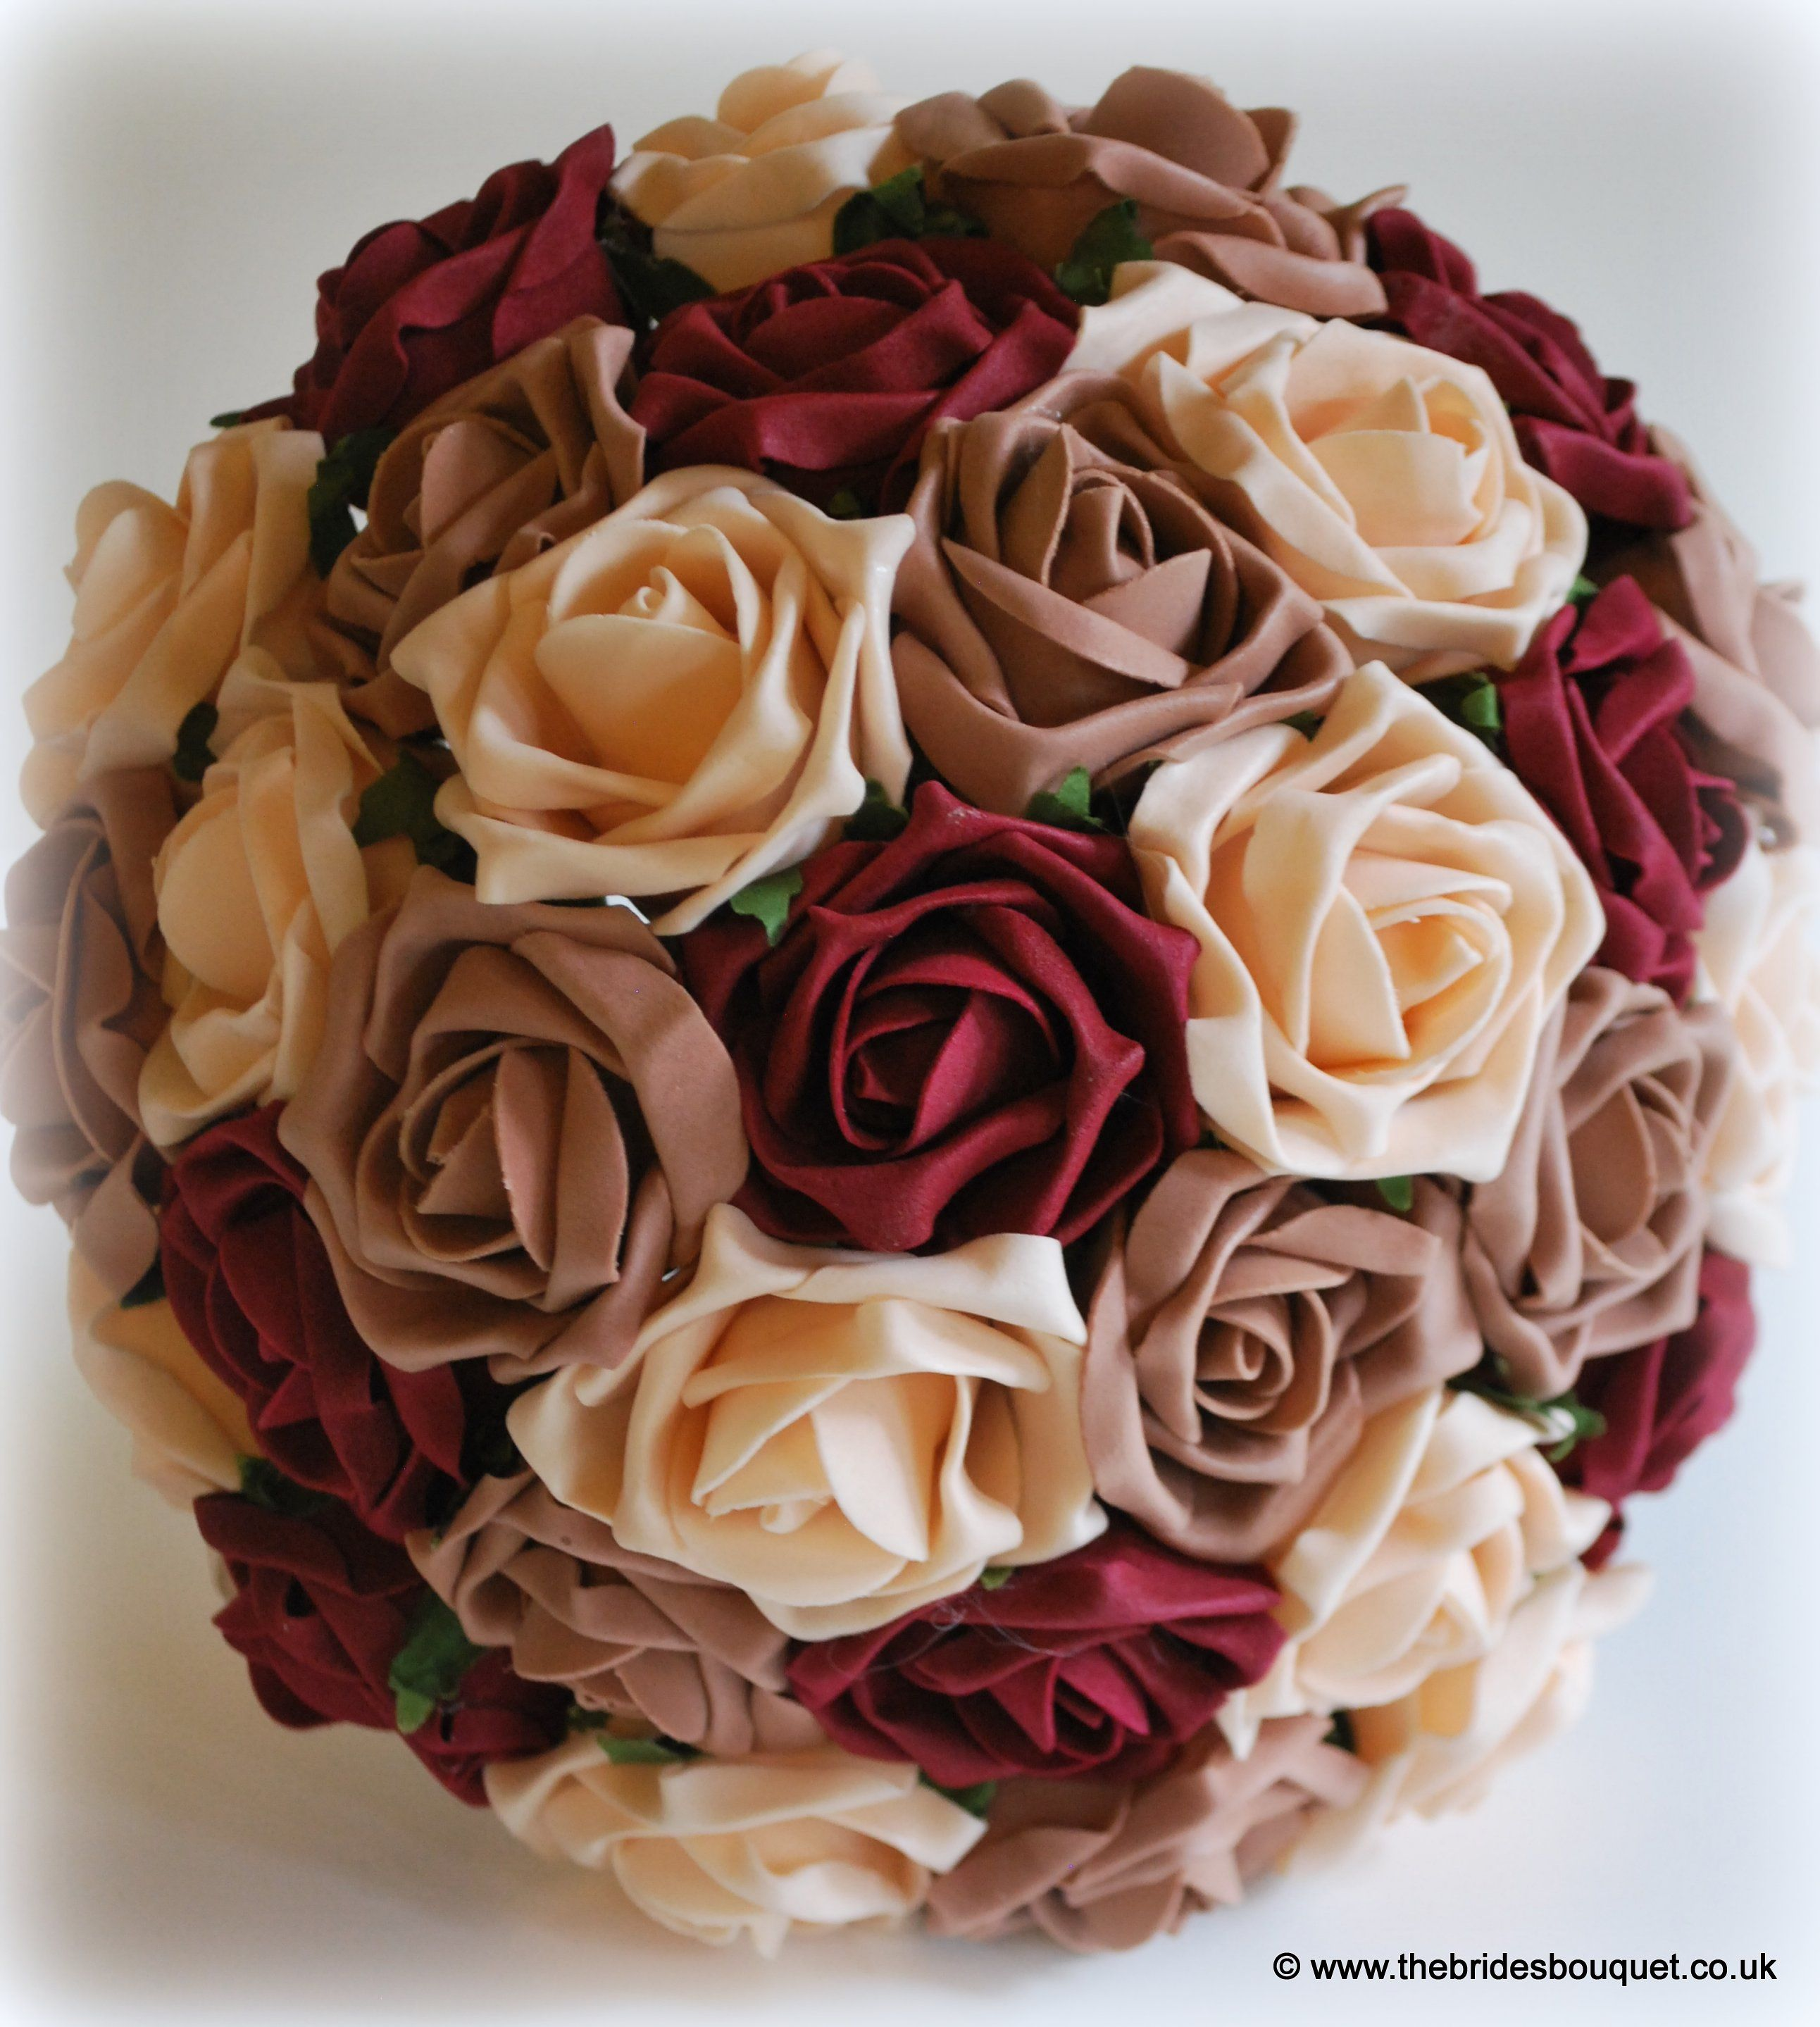 Cranberry champagne wedding - Wedding Flowers Autumnal Toned Brides Bouquet Of Roses Burgundy Theme Wedding Flowers A Special